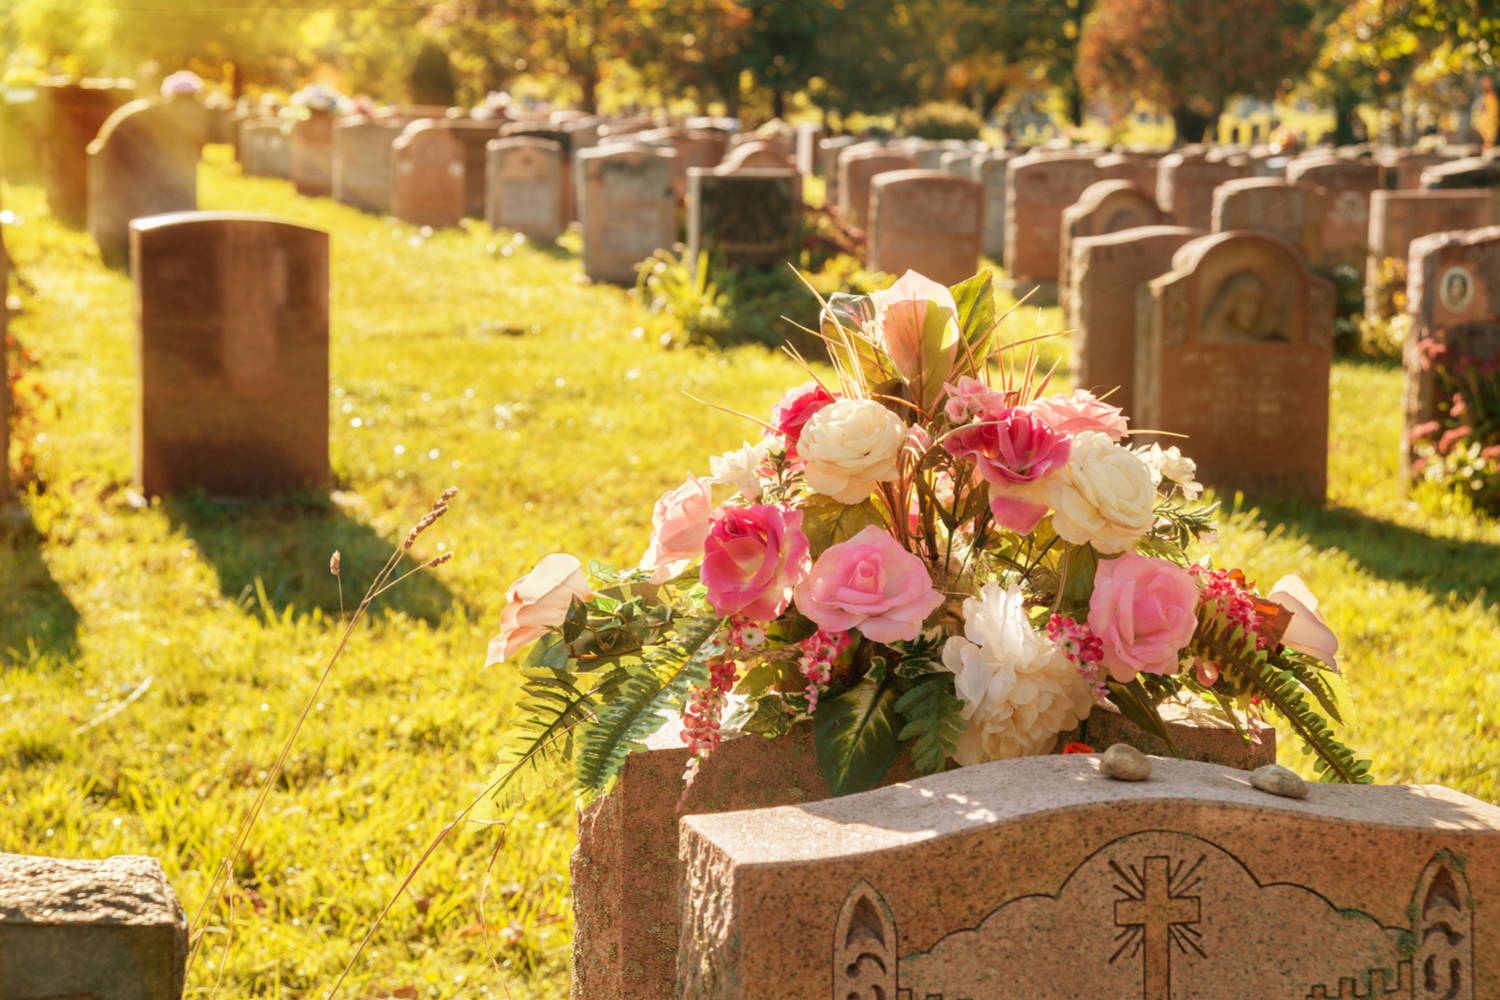 The history of headstones